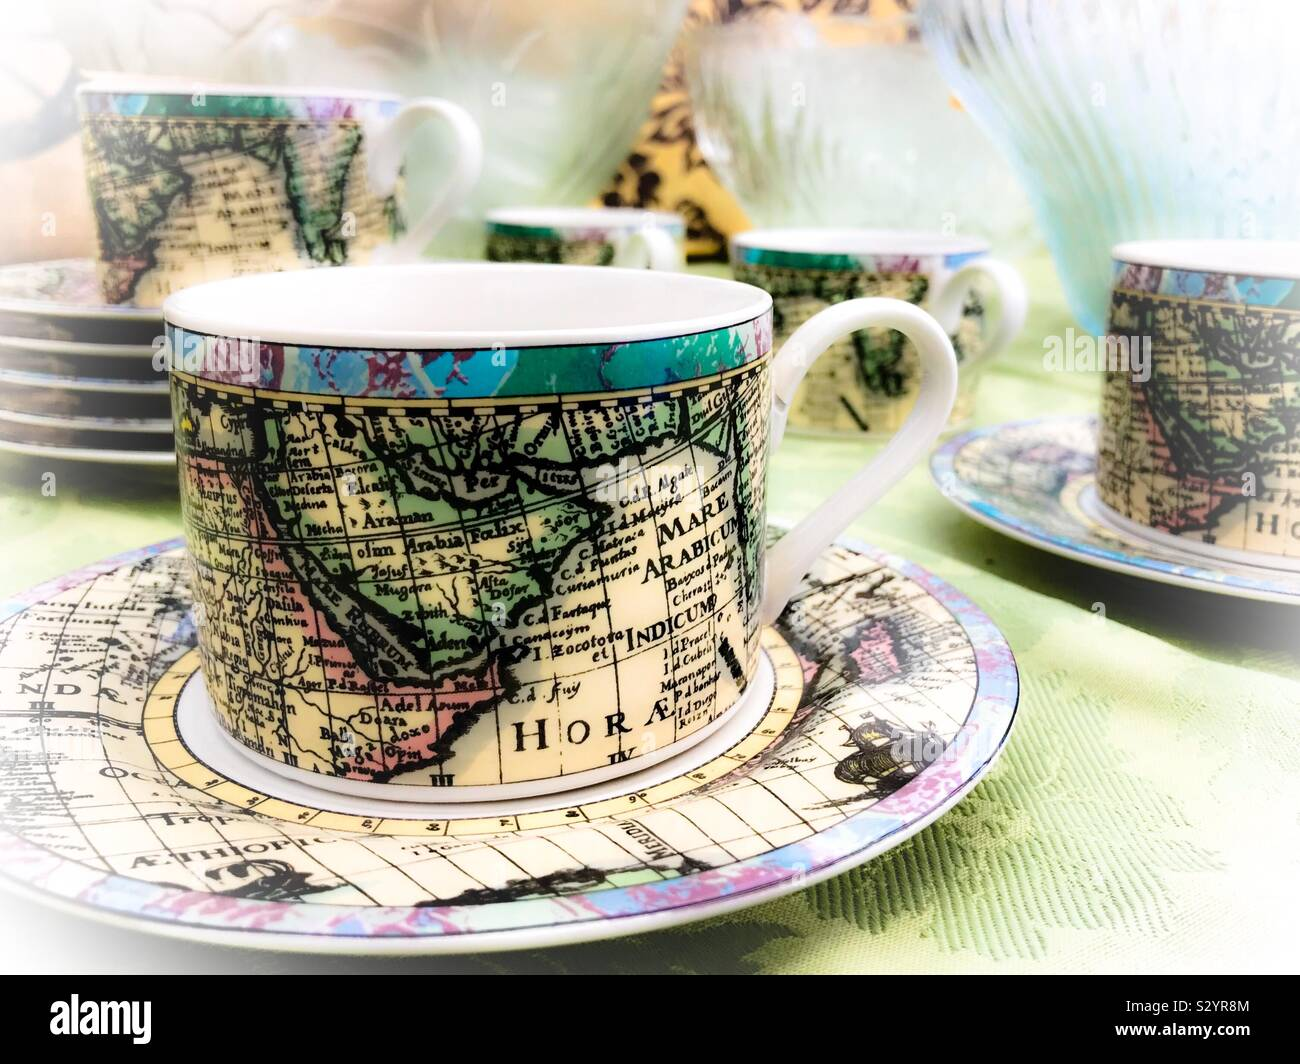 Tea Set Display High Resolution Stock Photography And Images Alamy